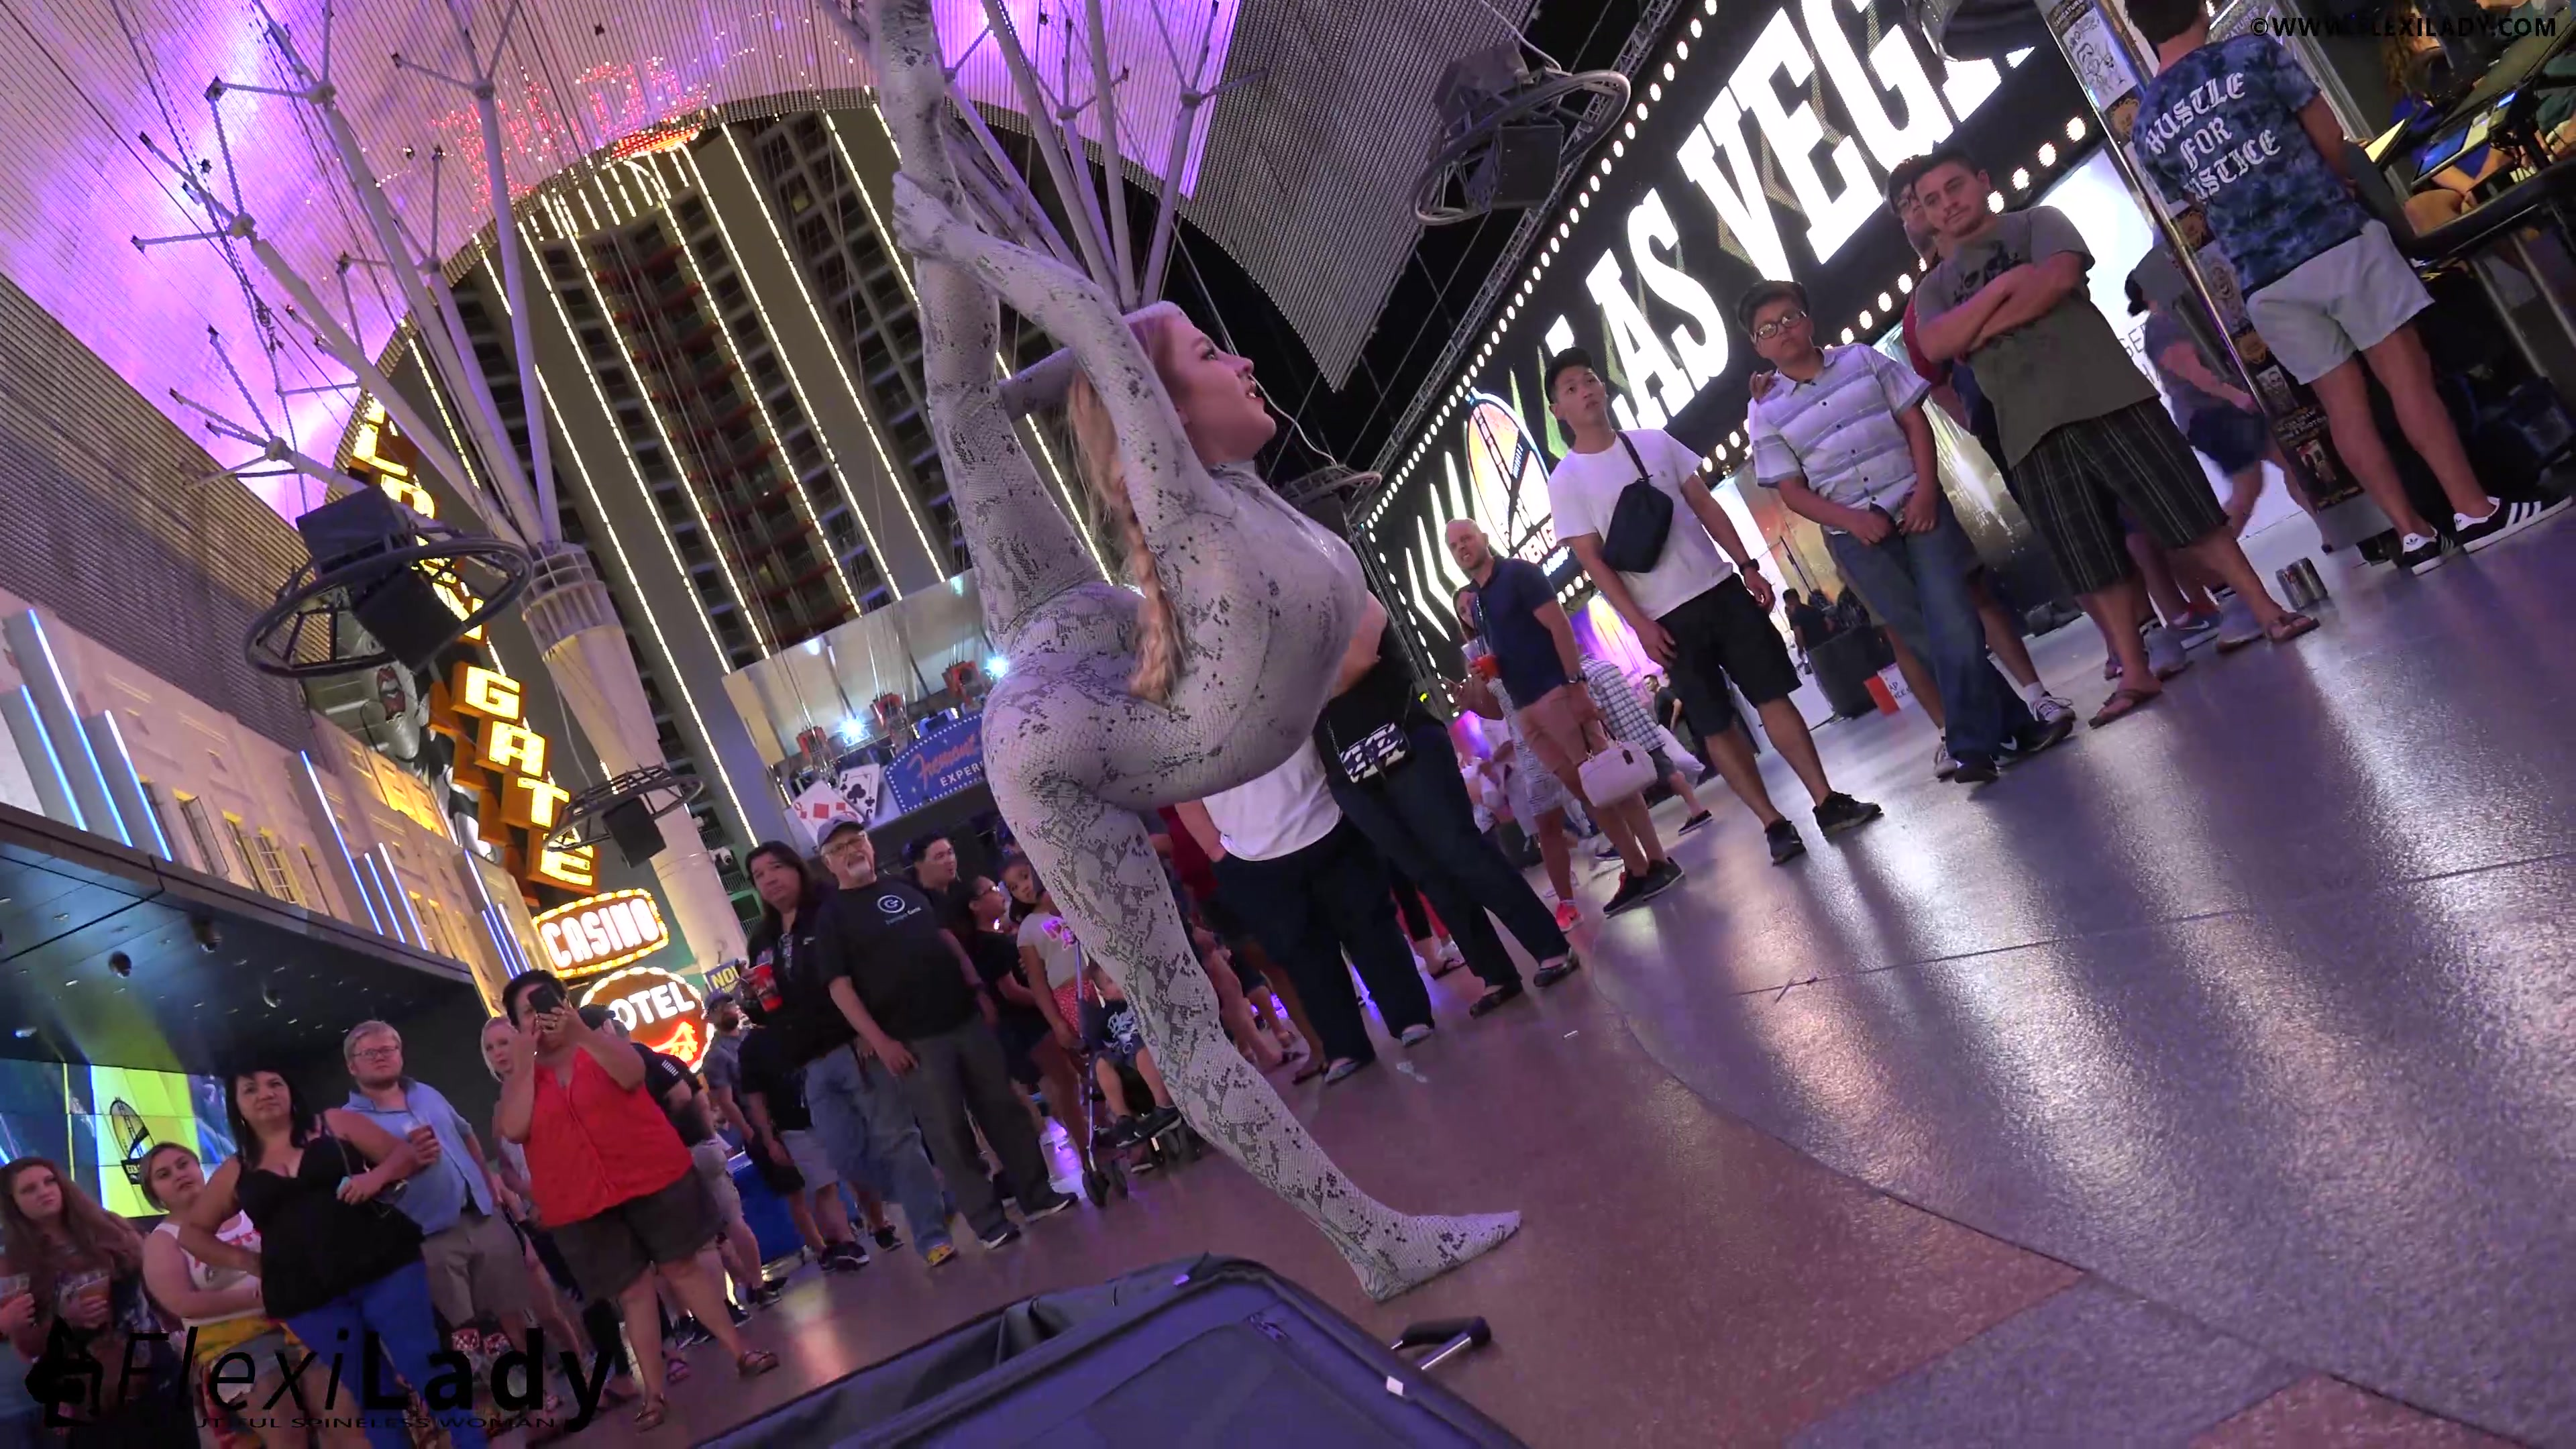 Un serpent flexible dans Freemont Street